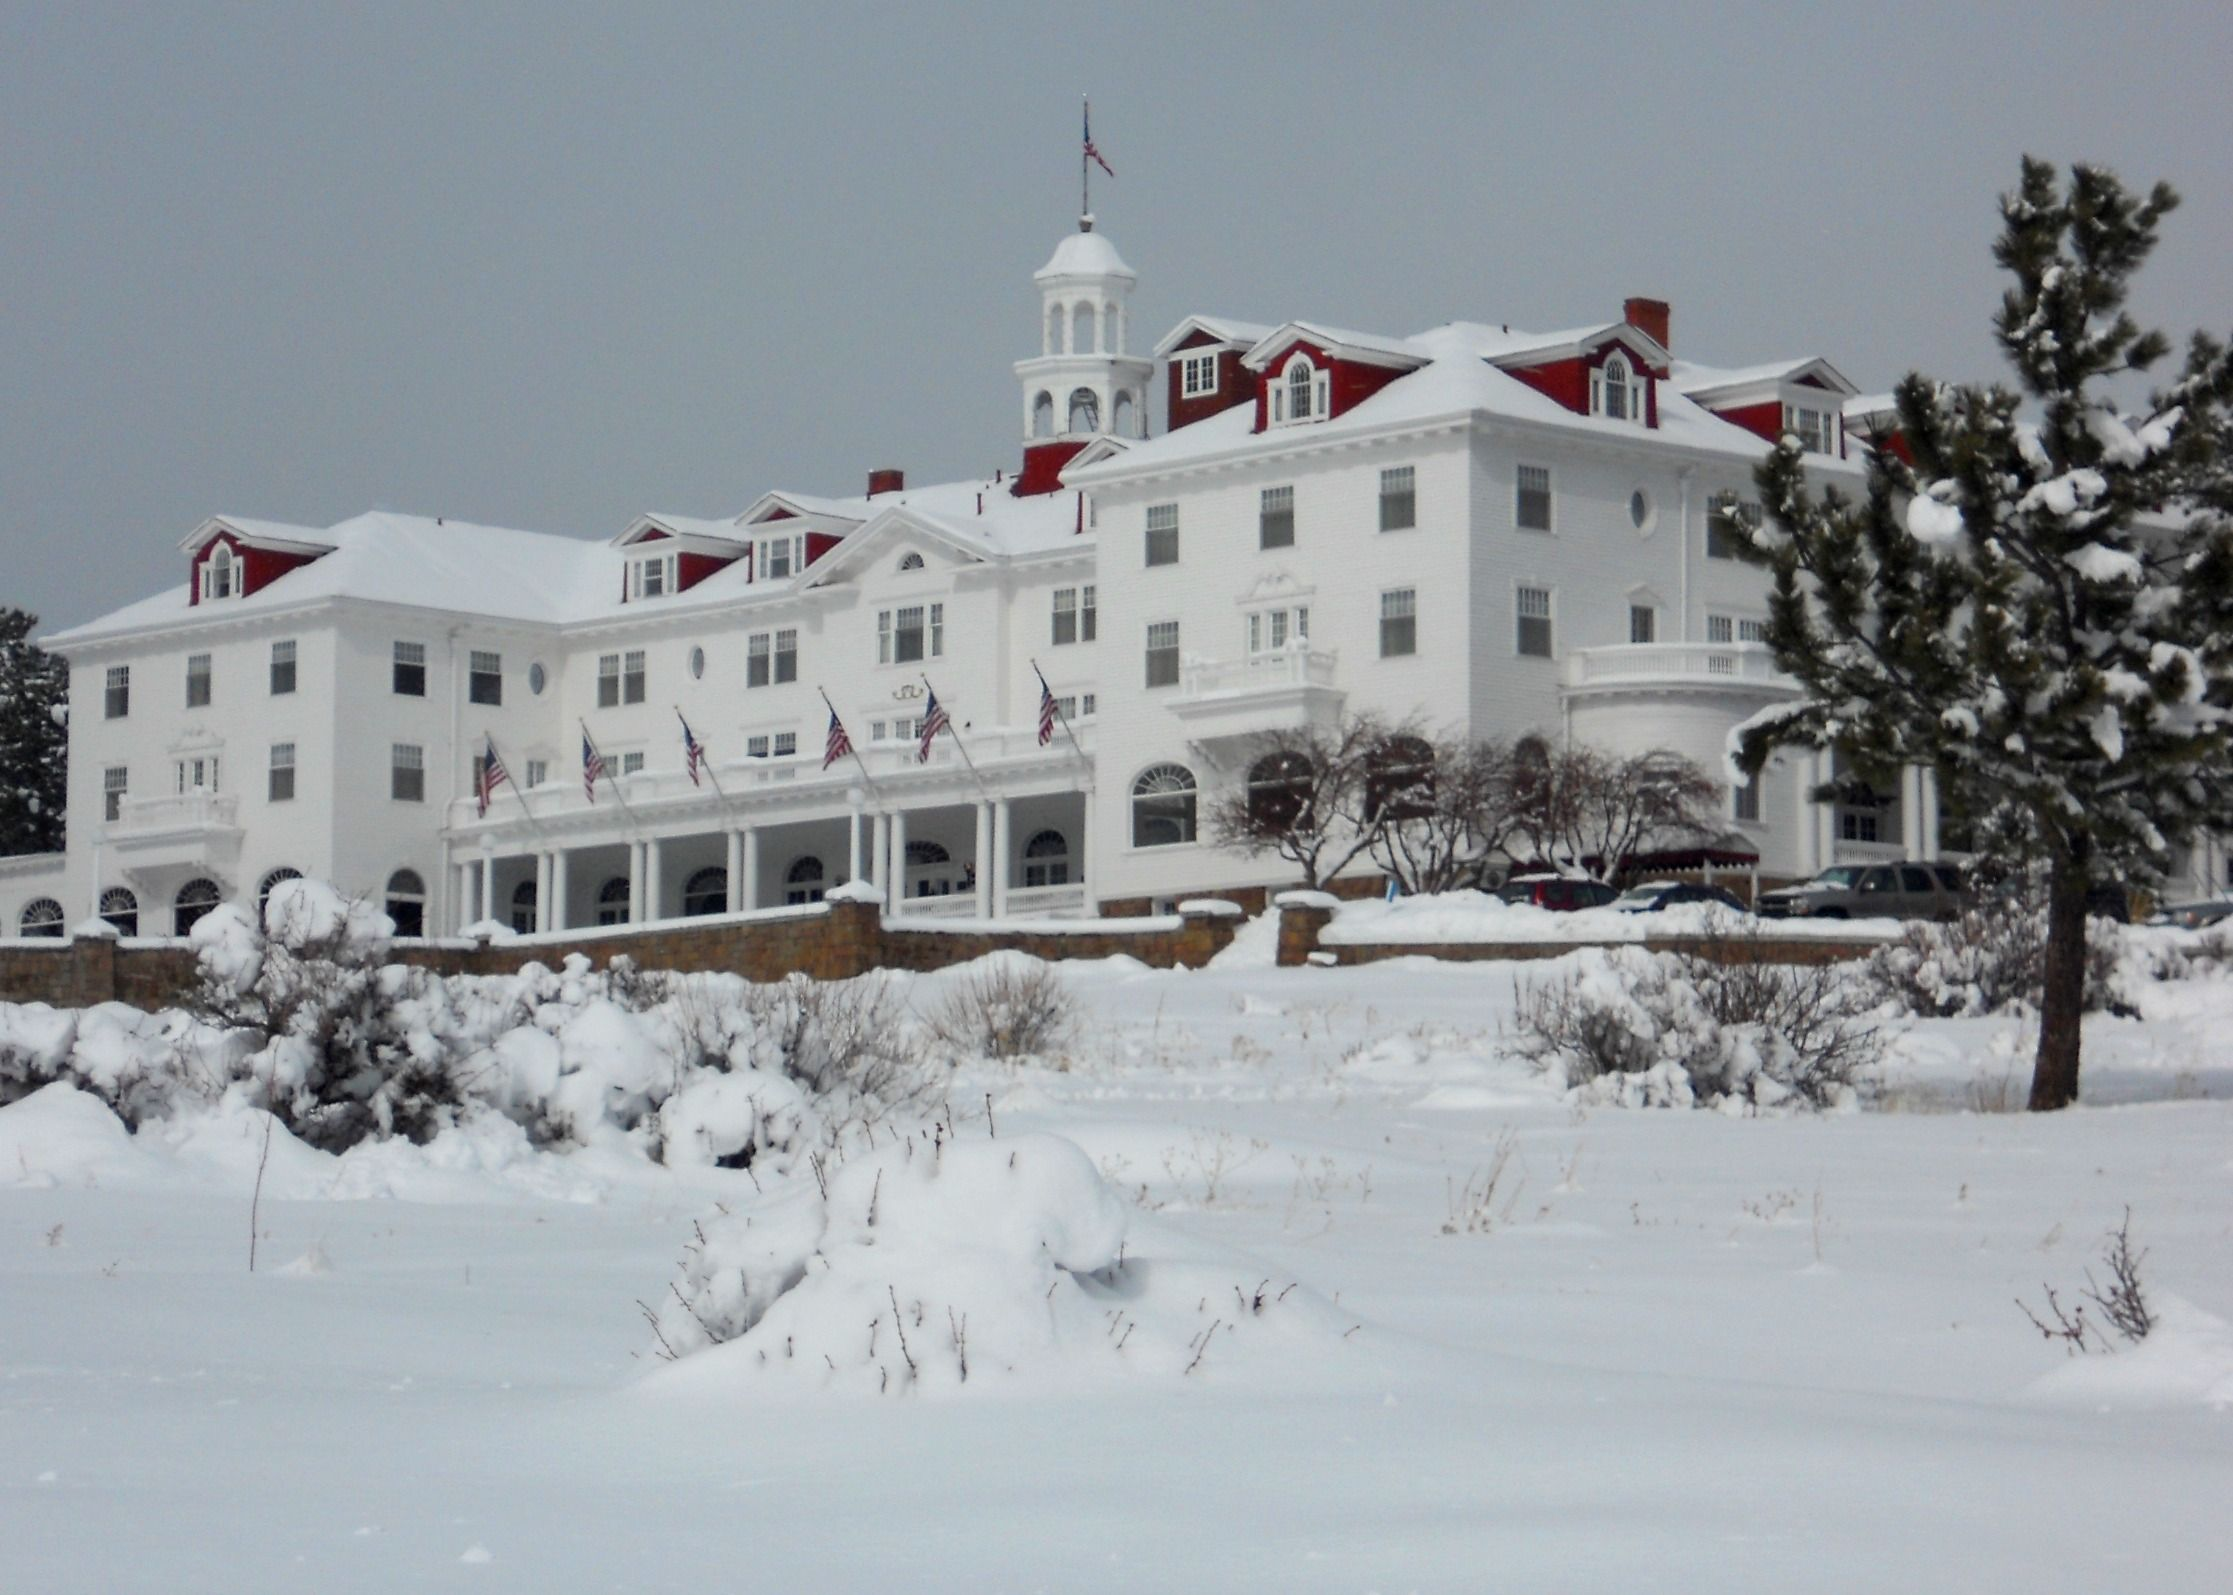 Stanley Hotel. Stephen King Inspired Write